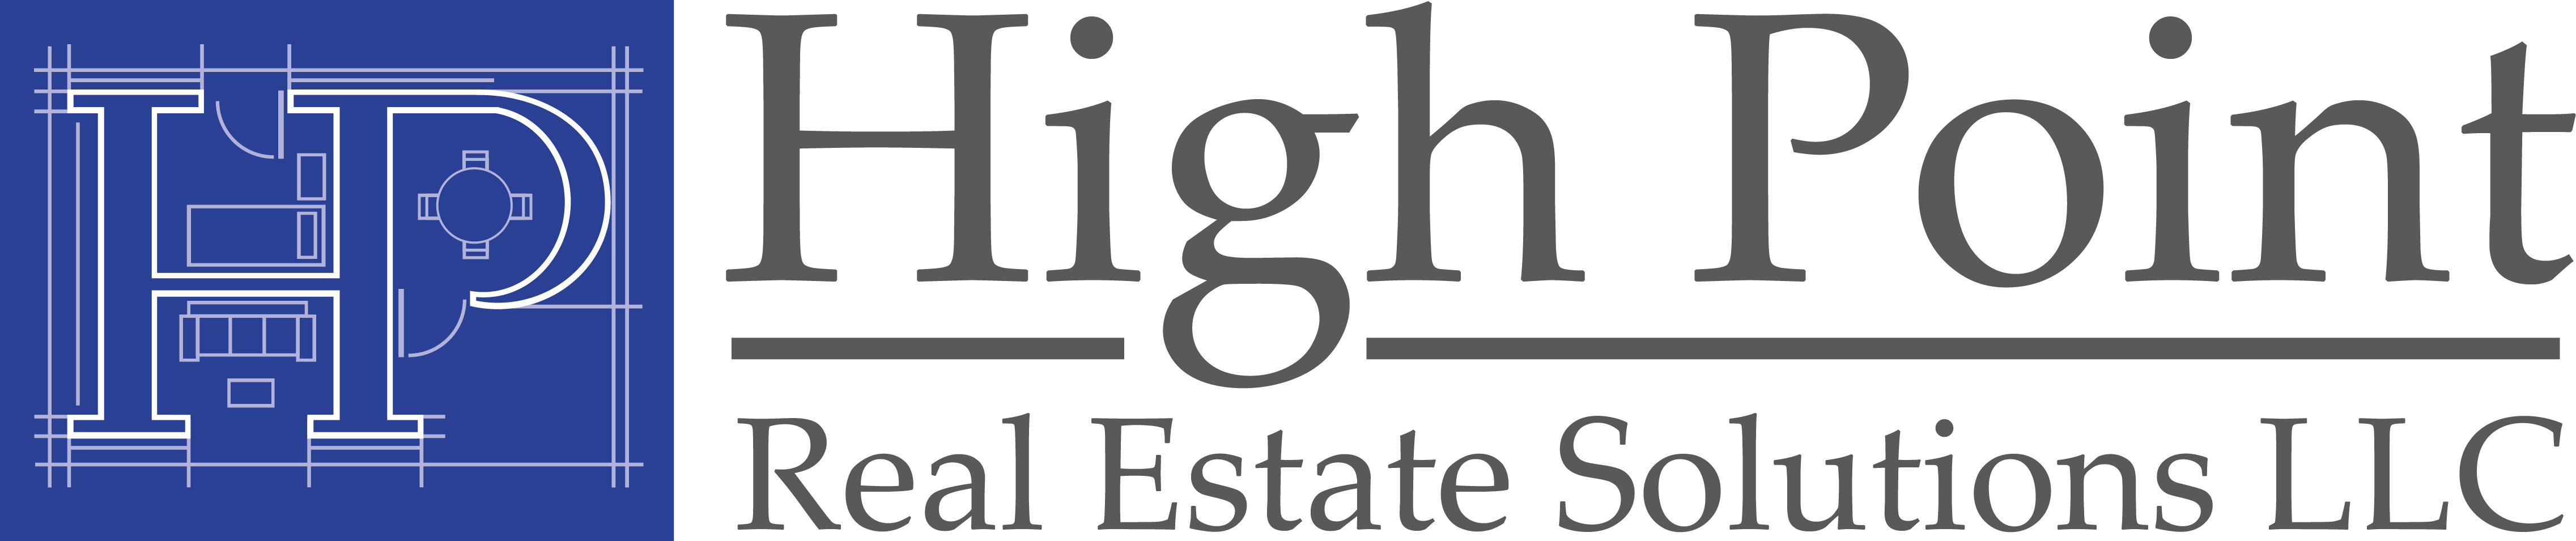 High Point Real Estate Solutions, LLC